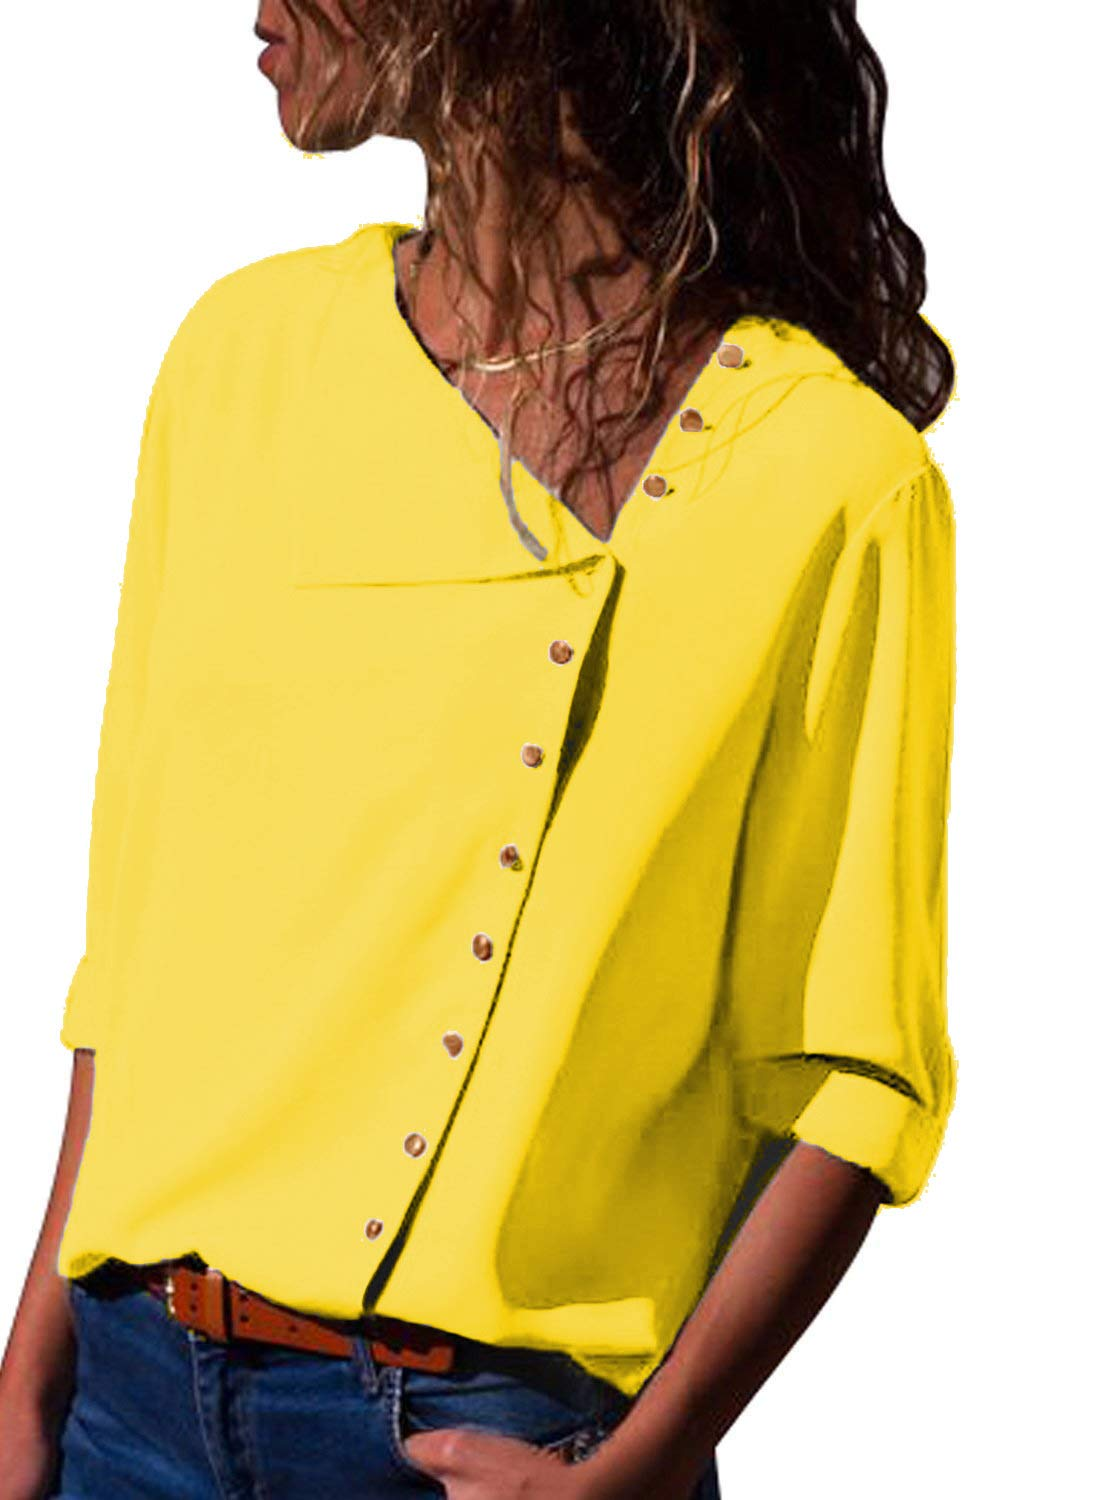 BETTE BOUTIK Womens Button-up Blouses Fit Comfy Cusual Shirts Tunics 3/4 Sleeves Yellow Small